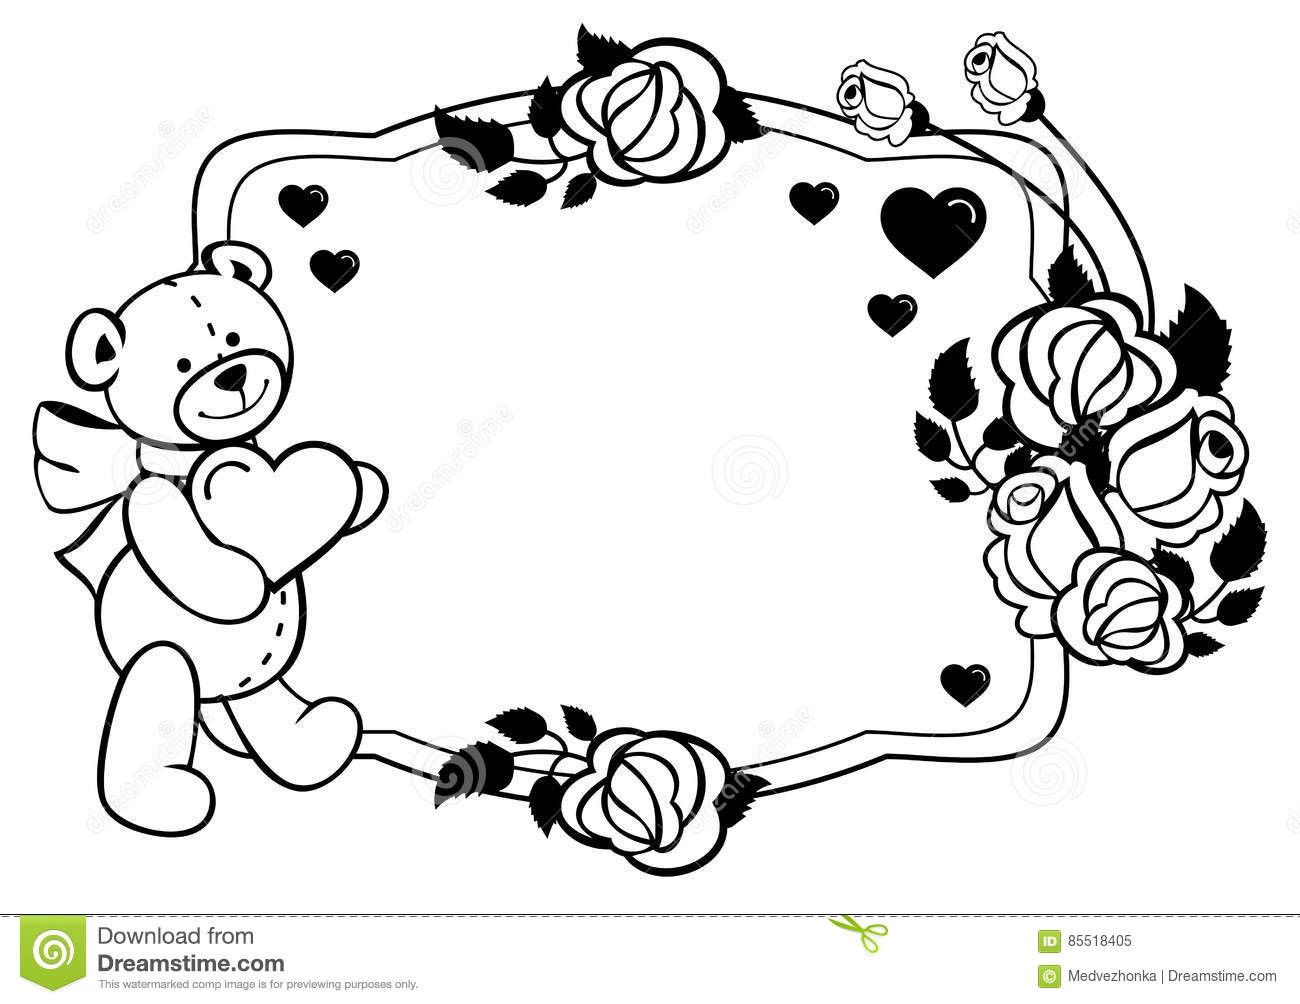 M Brain Labeling And Coloring Coloring Pages